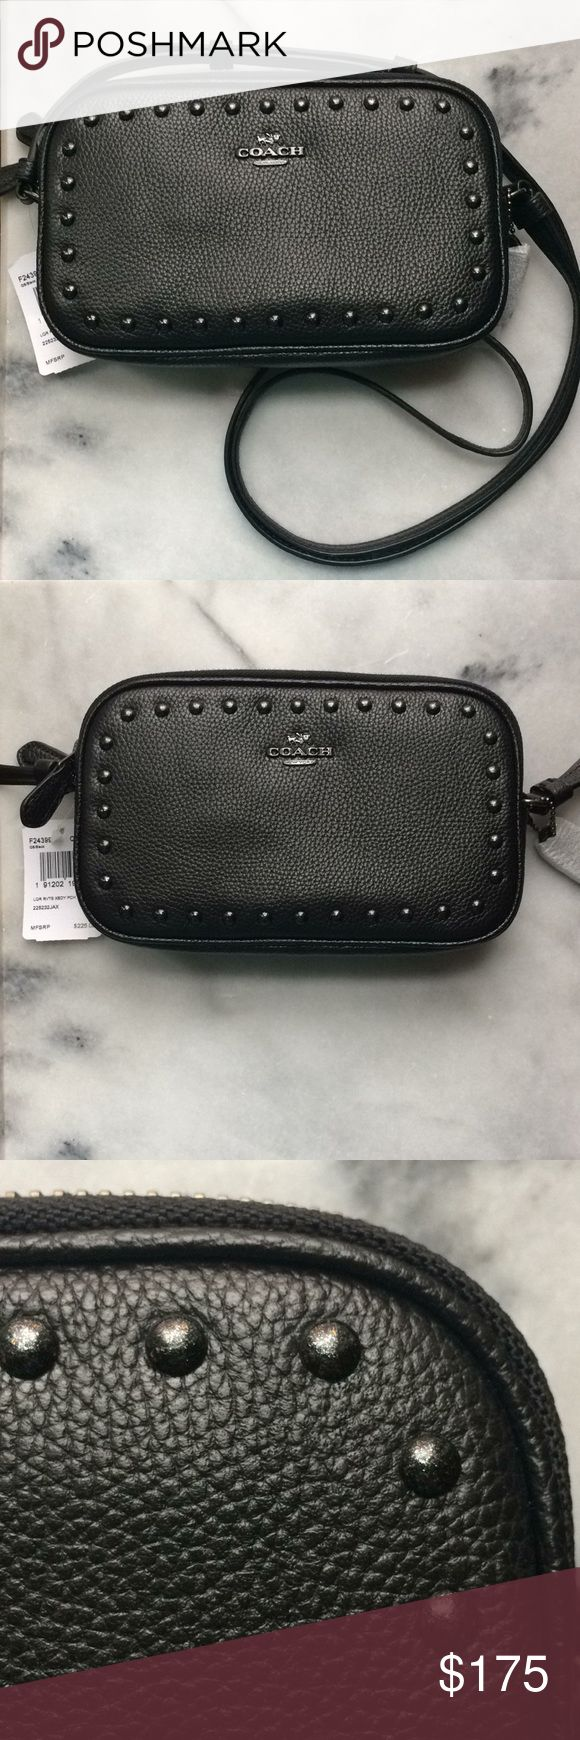 """Coach Crossbody Pouch Black Lacquer Rivets NWT Coach Crossbody Pouch- Black with Lacquer Rivets Polished Pebble Leather 7 1/2 L x 4 1/2 H x 1 1/2 W Strap with 23"""" drop for Crossbody or shoulder wear 2 credit card slots Inside multifunction pocket Double zip closure with black fabric lining inside  Brand New With Tags with original packaging  Smoke free home Bundle with another item & save 15%! Coach Bags Crossbody Bags"""